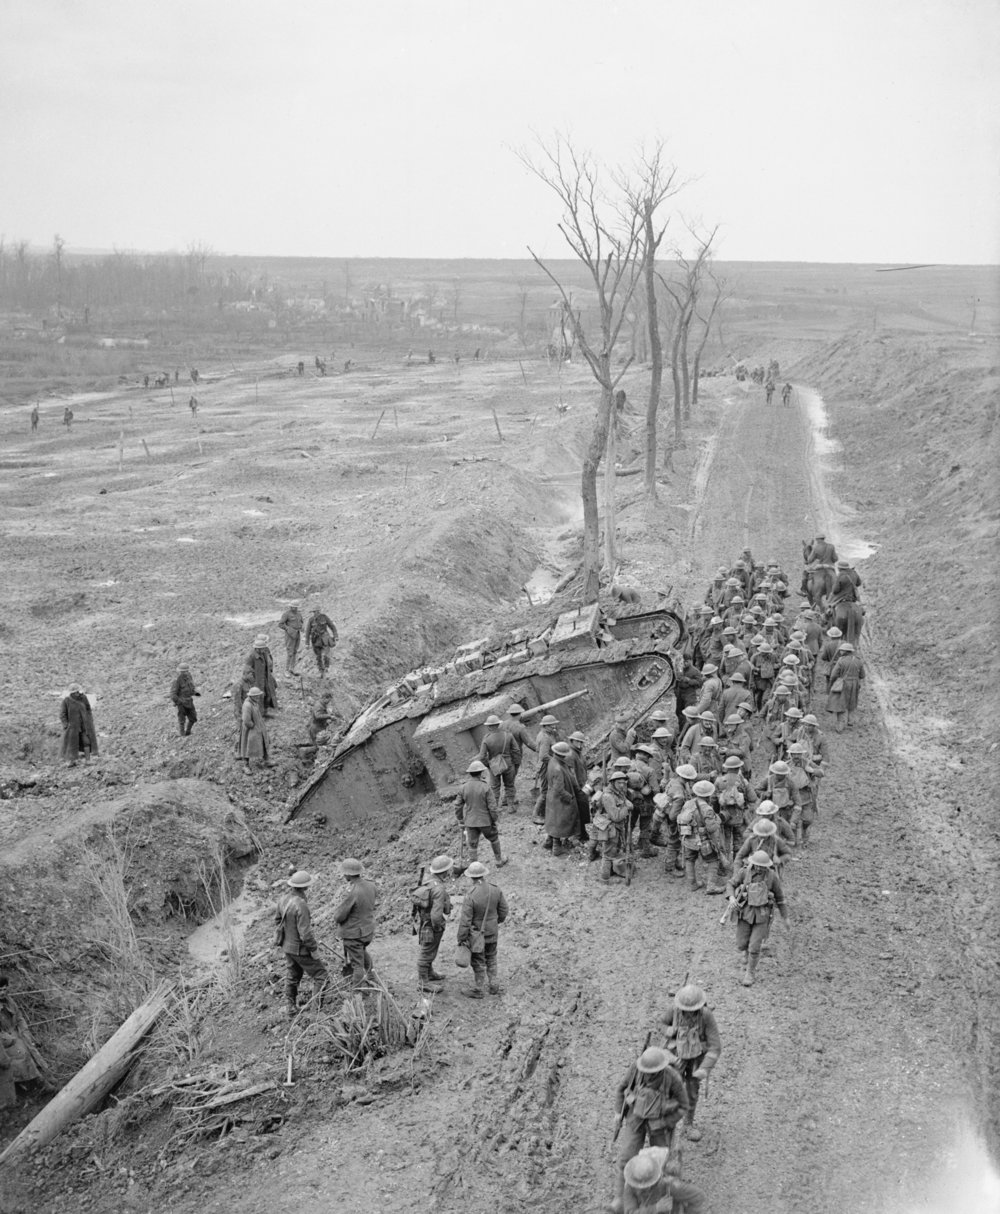 Soldiers gather around a ditched tank near Fampoux, 9 April 1917 John Brooke © IWM Q 6434